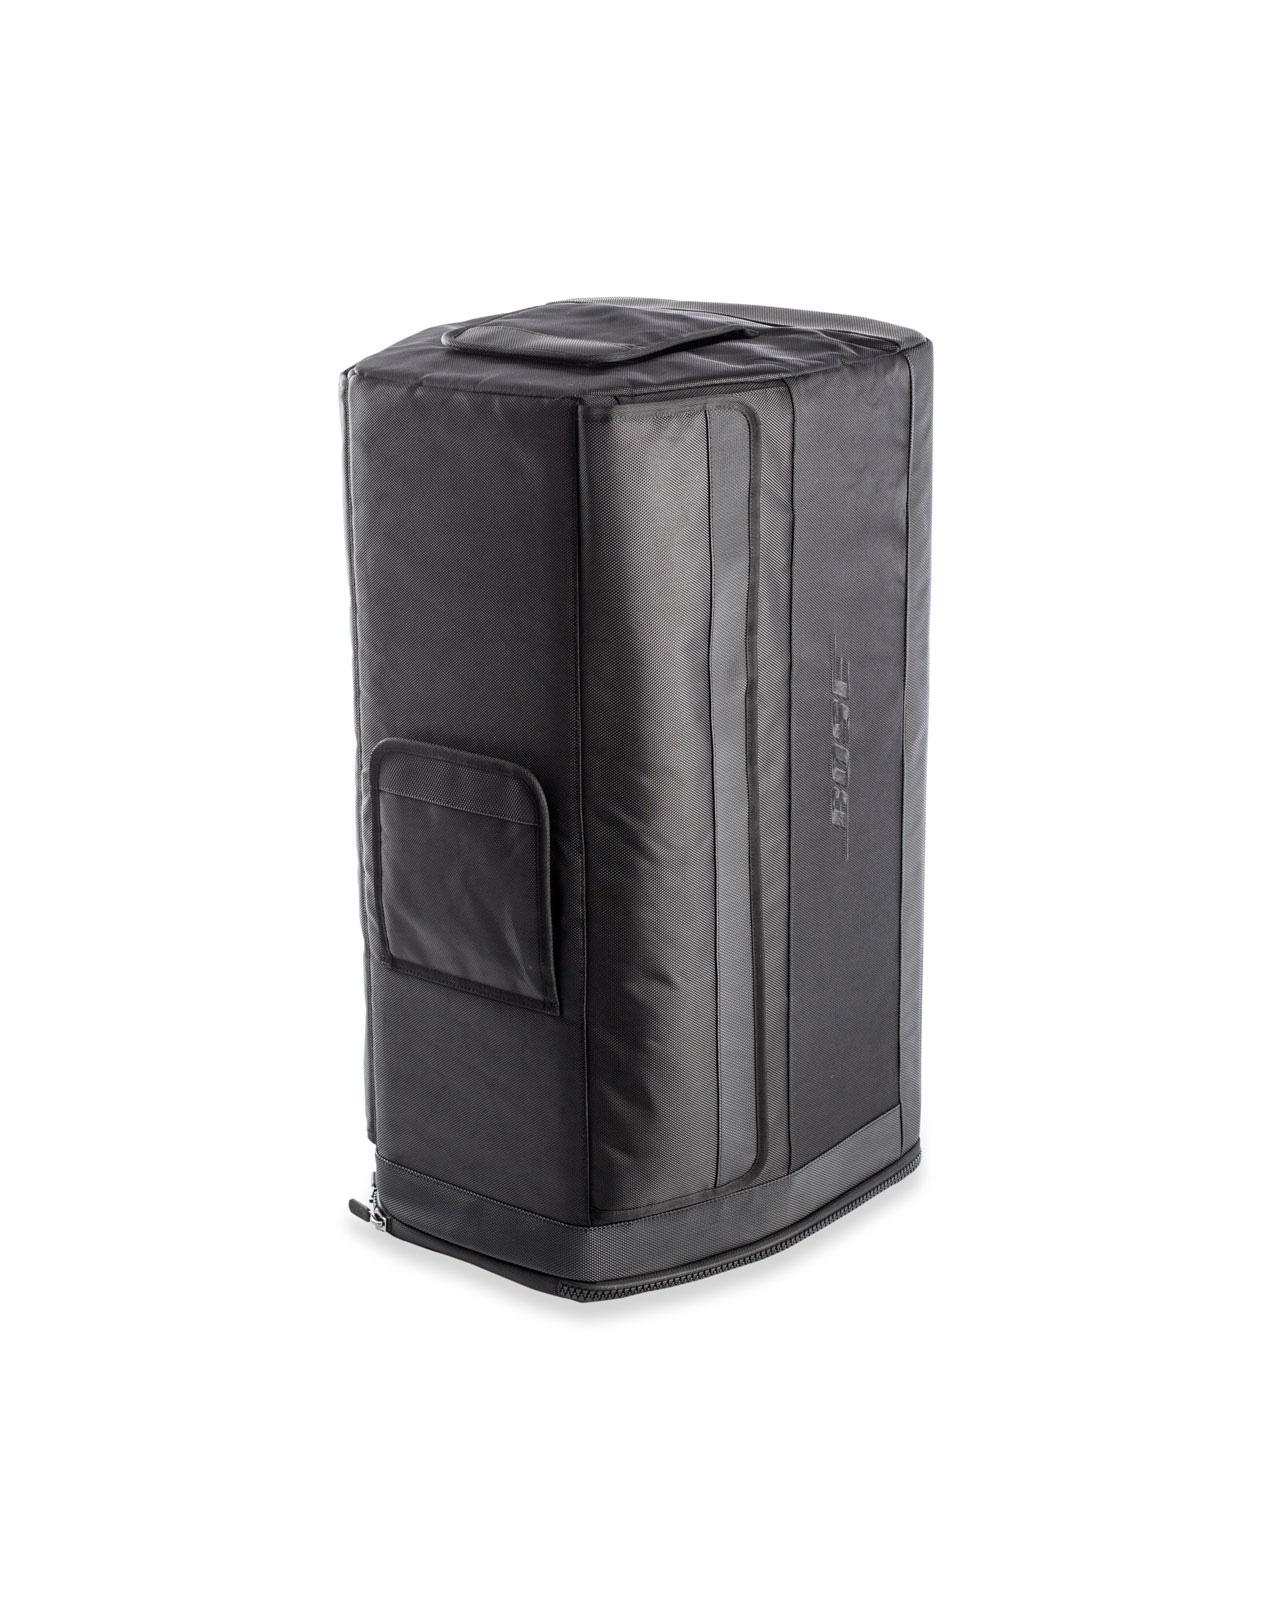 Bose F1 812 Array Travel Bag